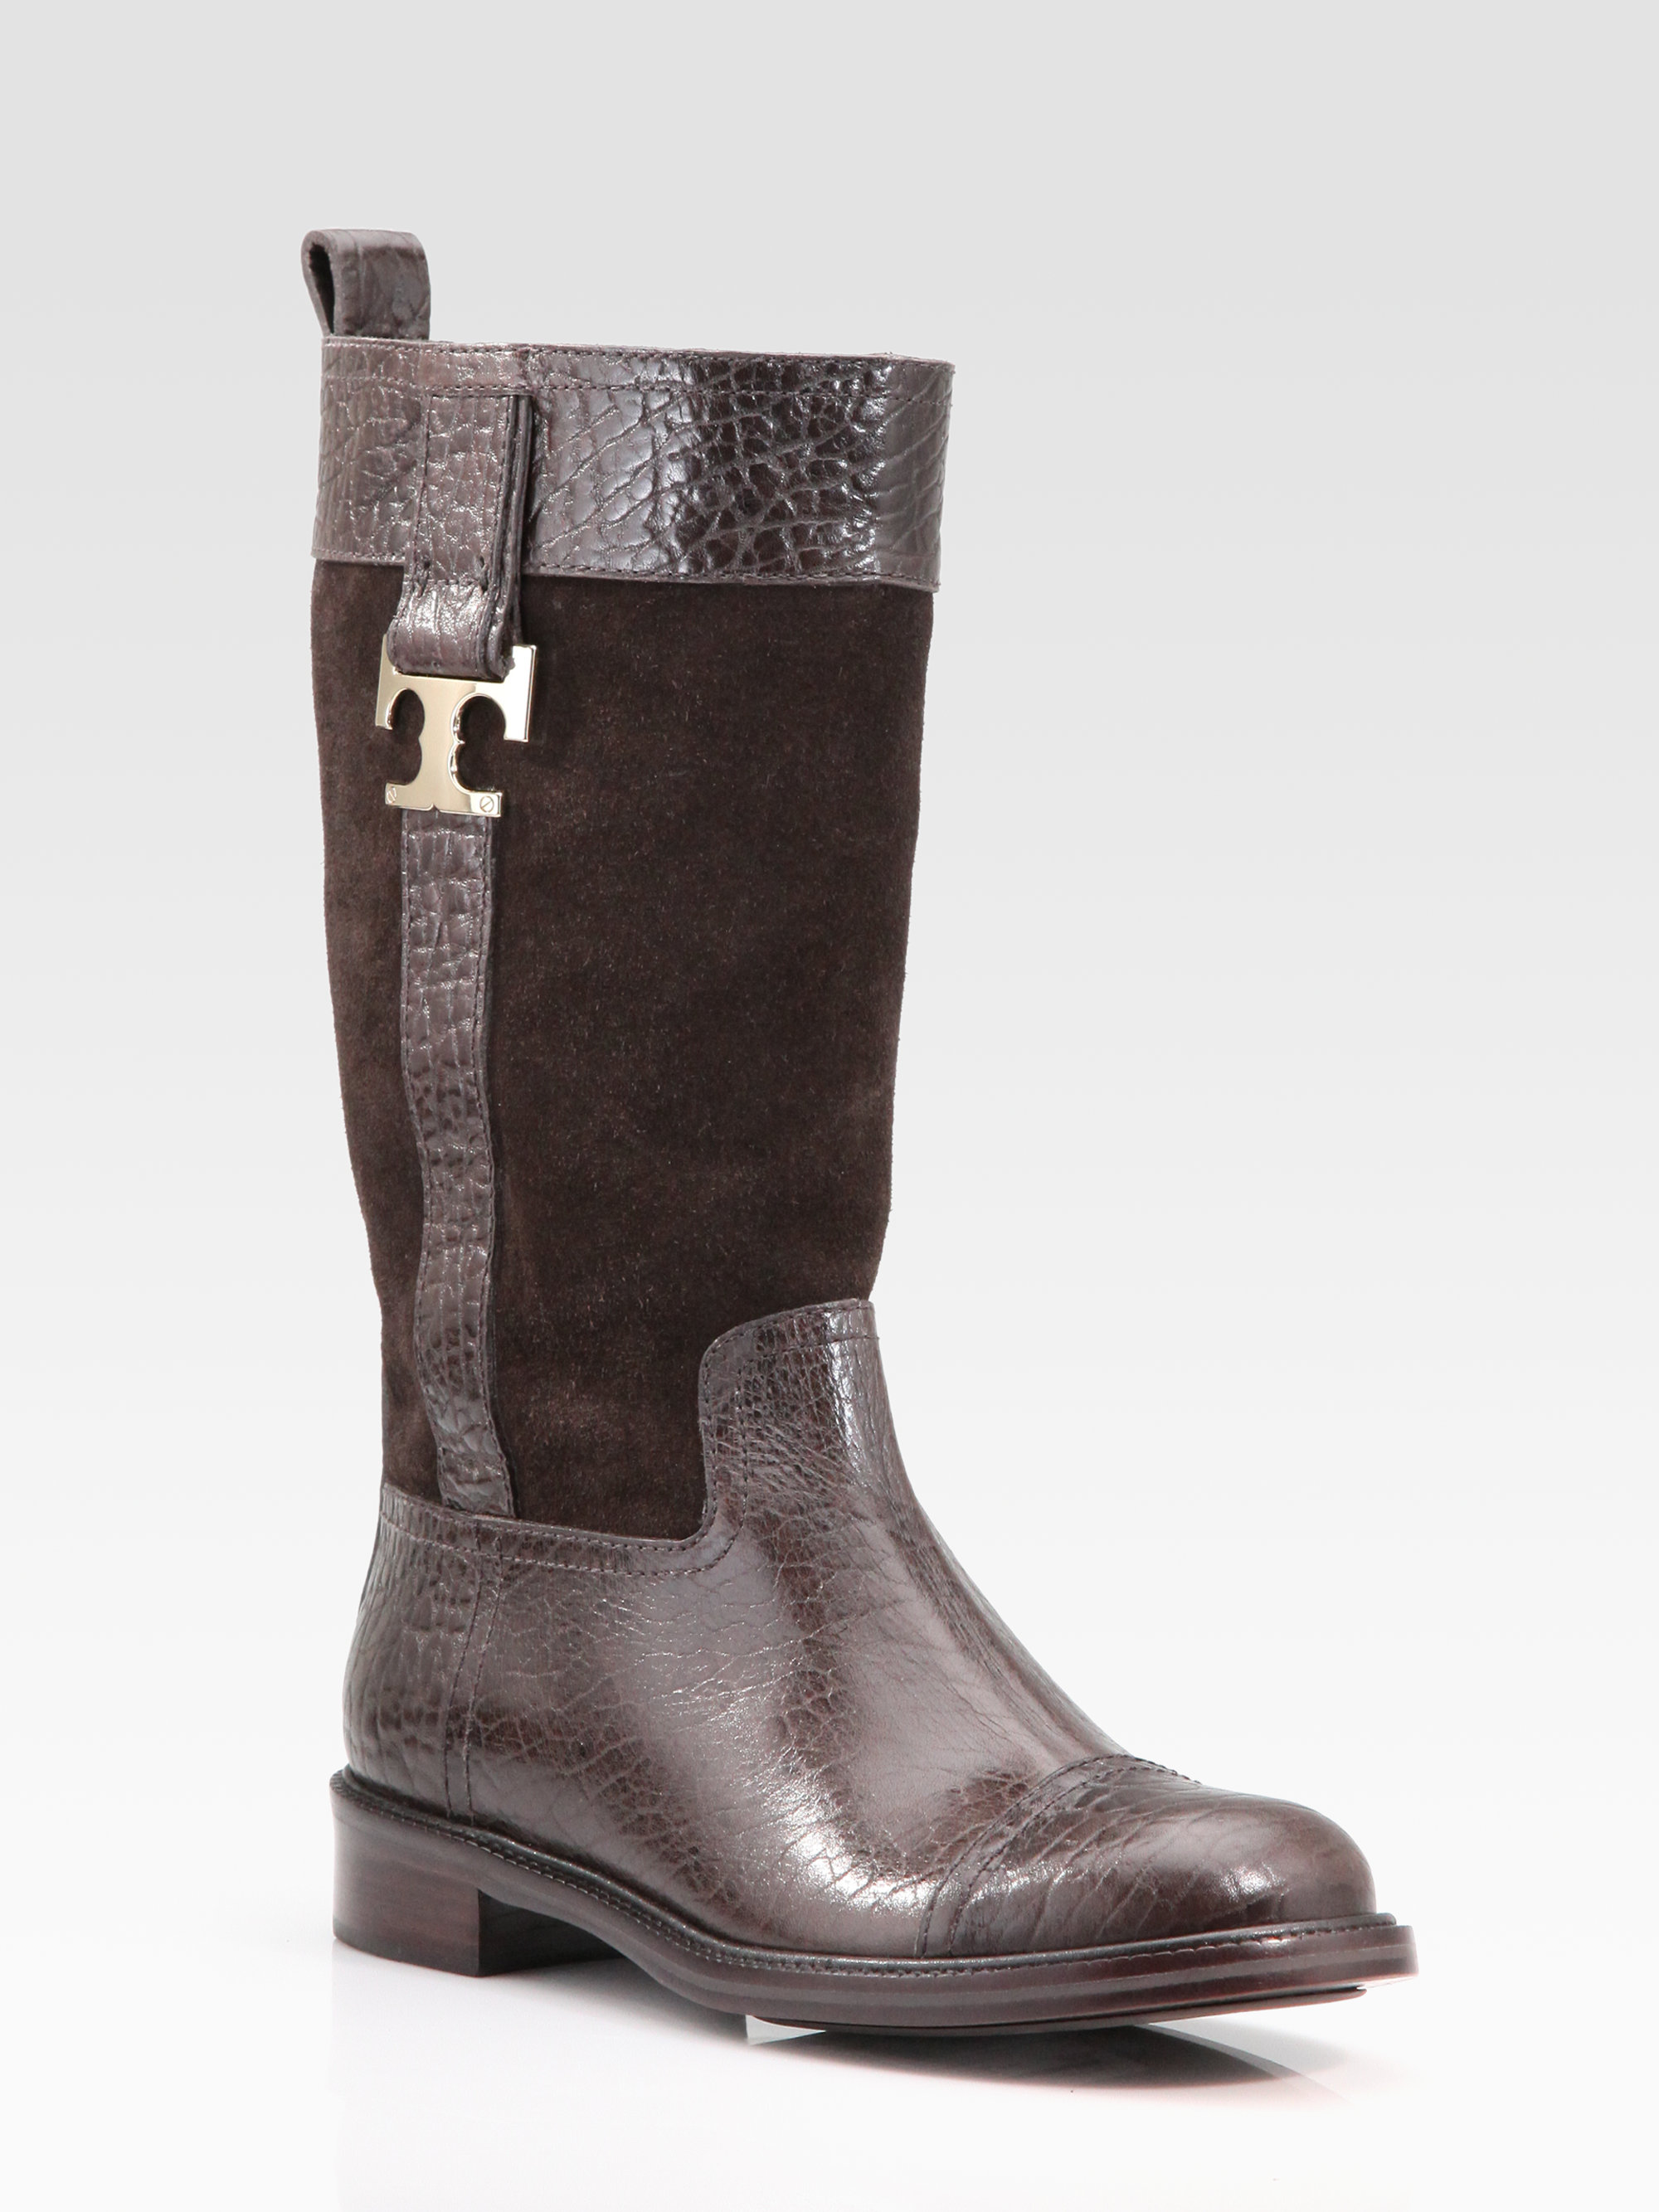 Tory Burch Platform Mid-Calf Boots cheap price pre order buy cheap best for nice sale online cheap sale low shipping cheap sale with credit card VD1z5lM